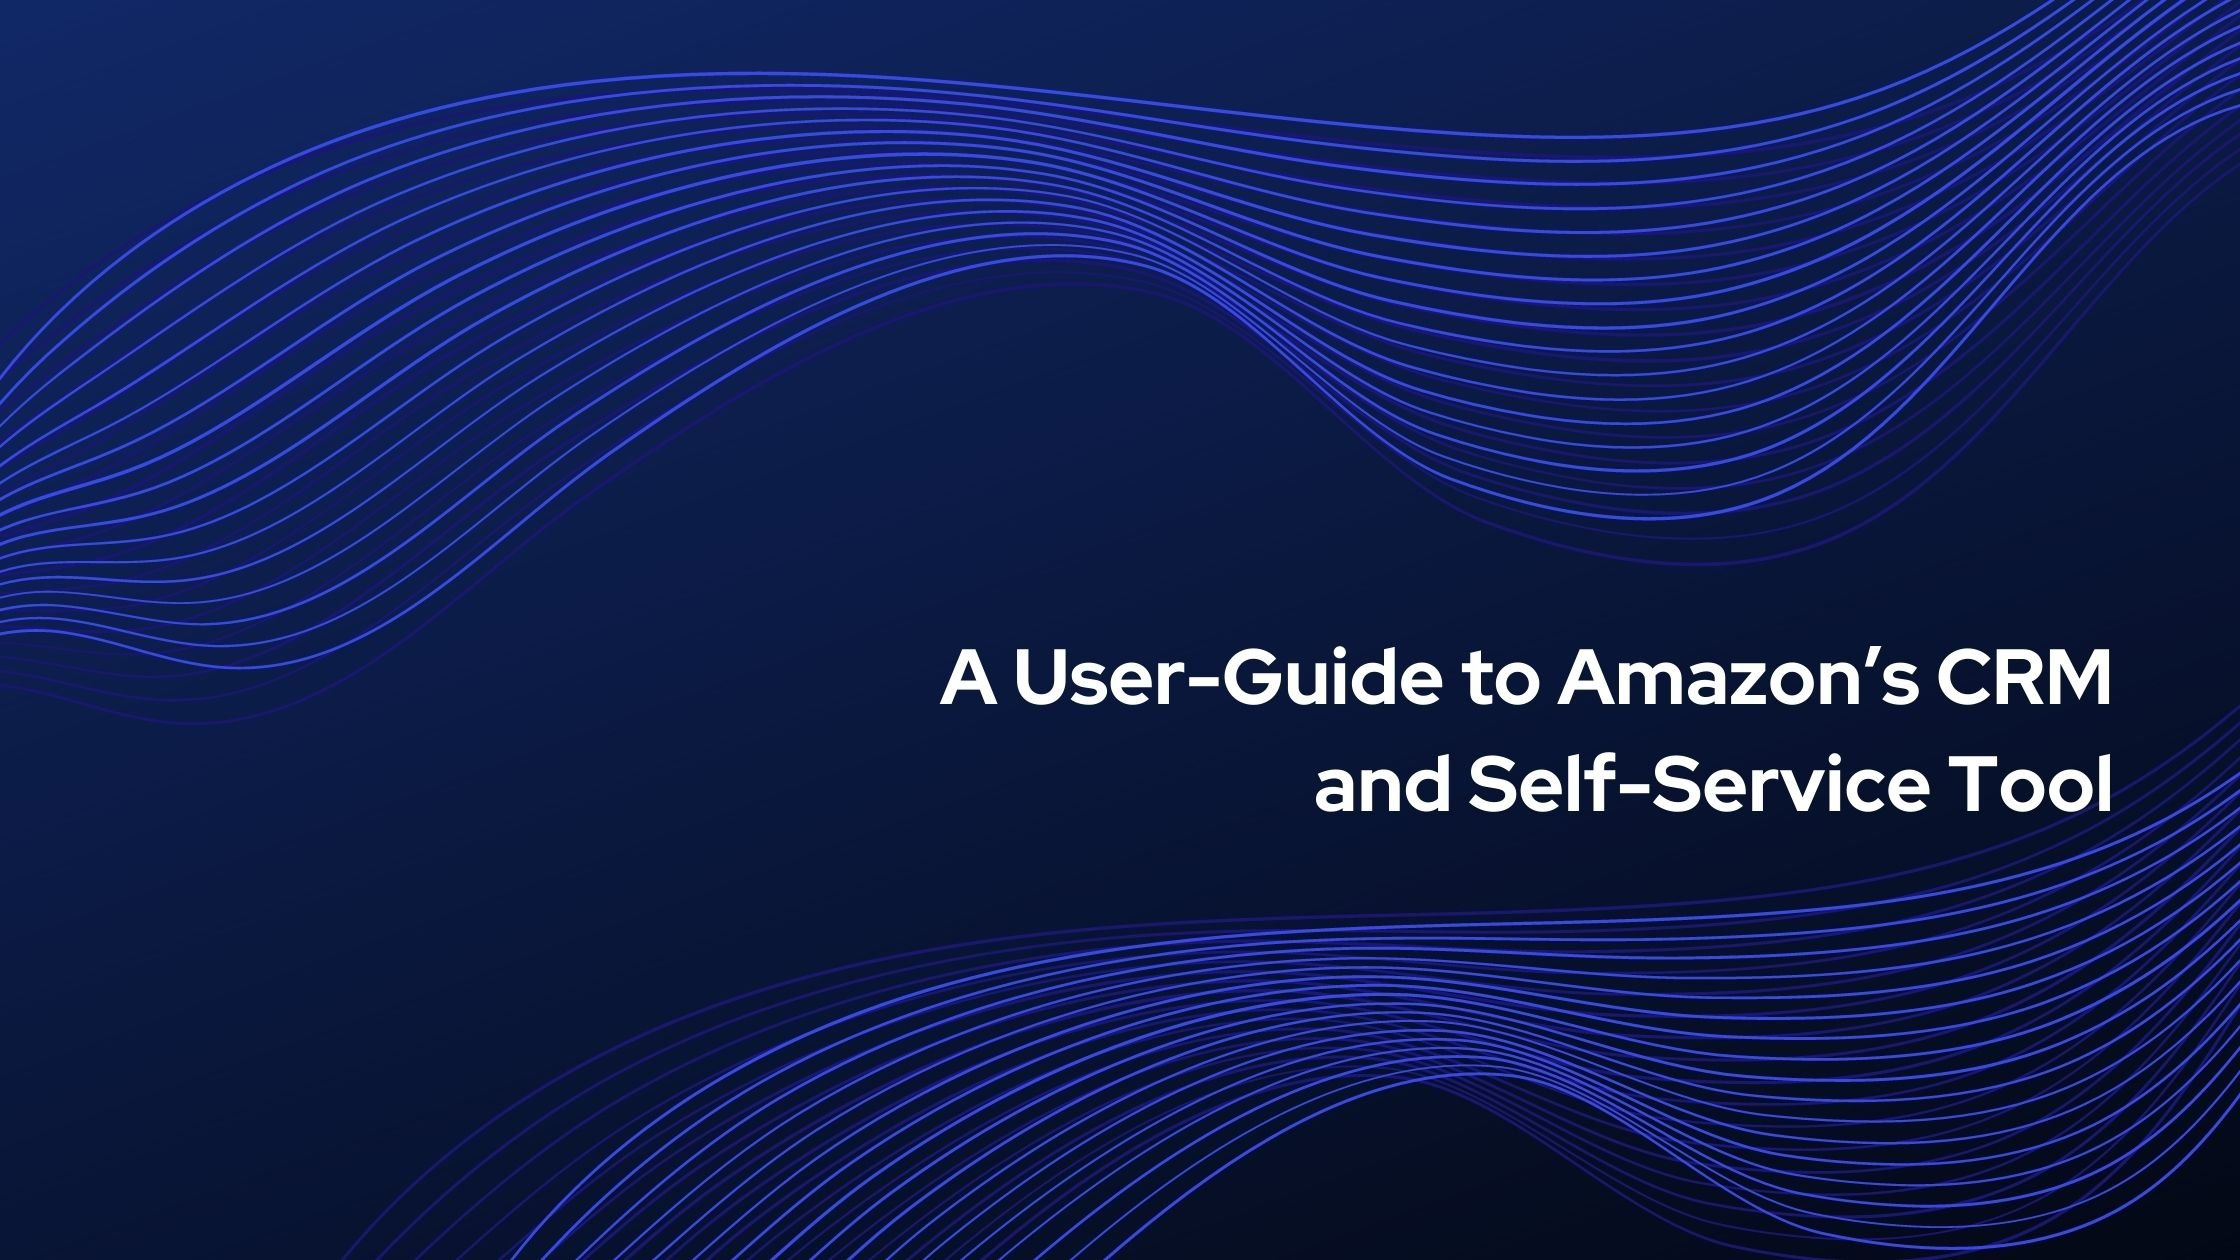 A User-Guide to Amazon's CRM and Self-Service Tools